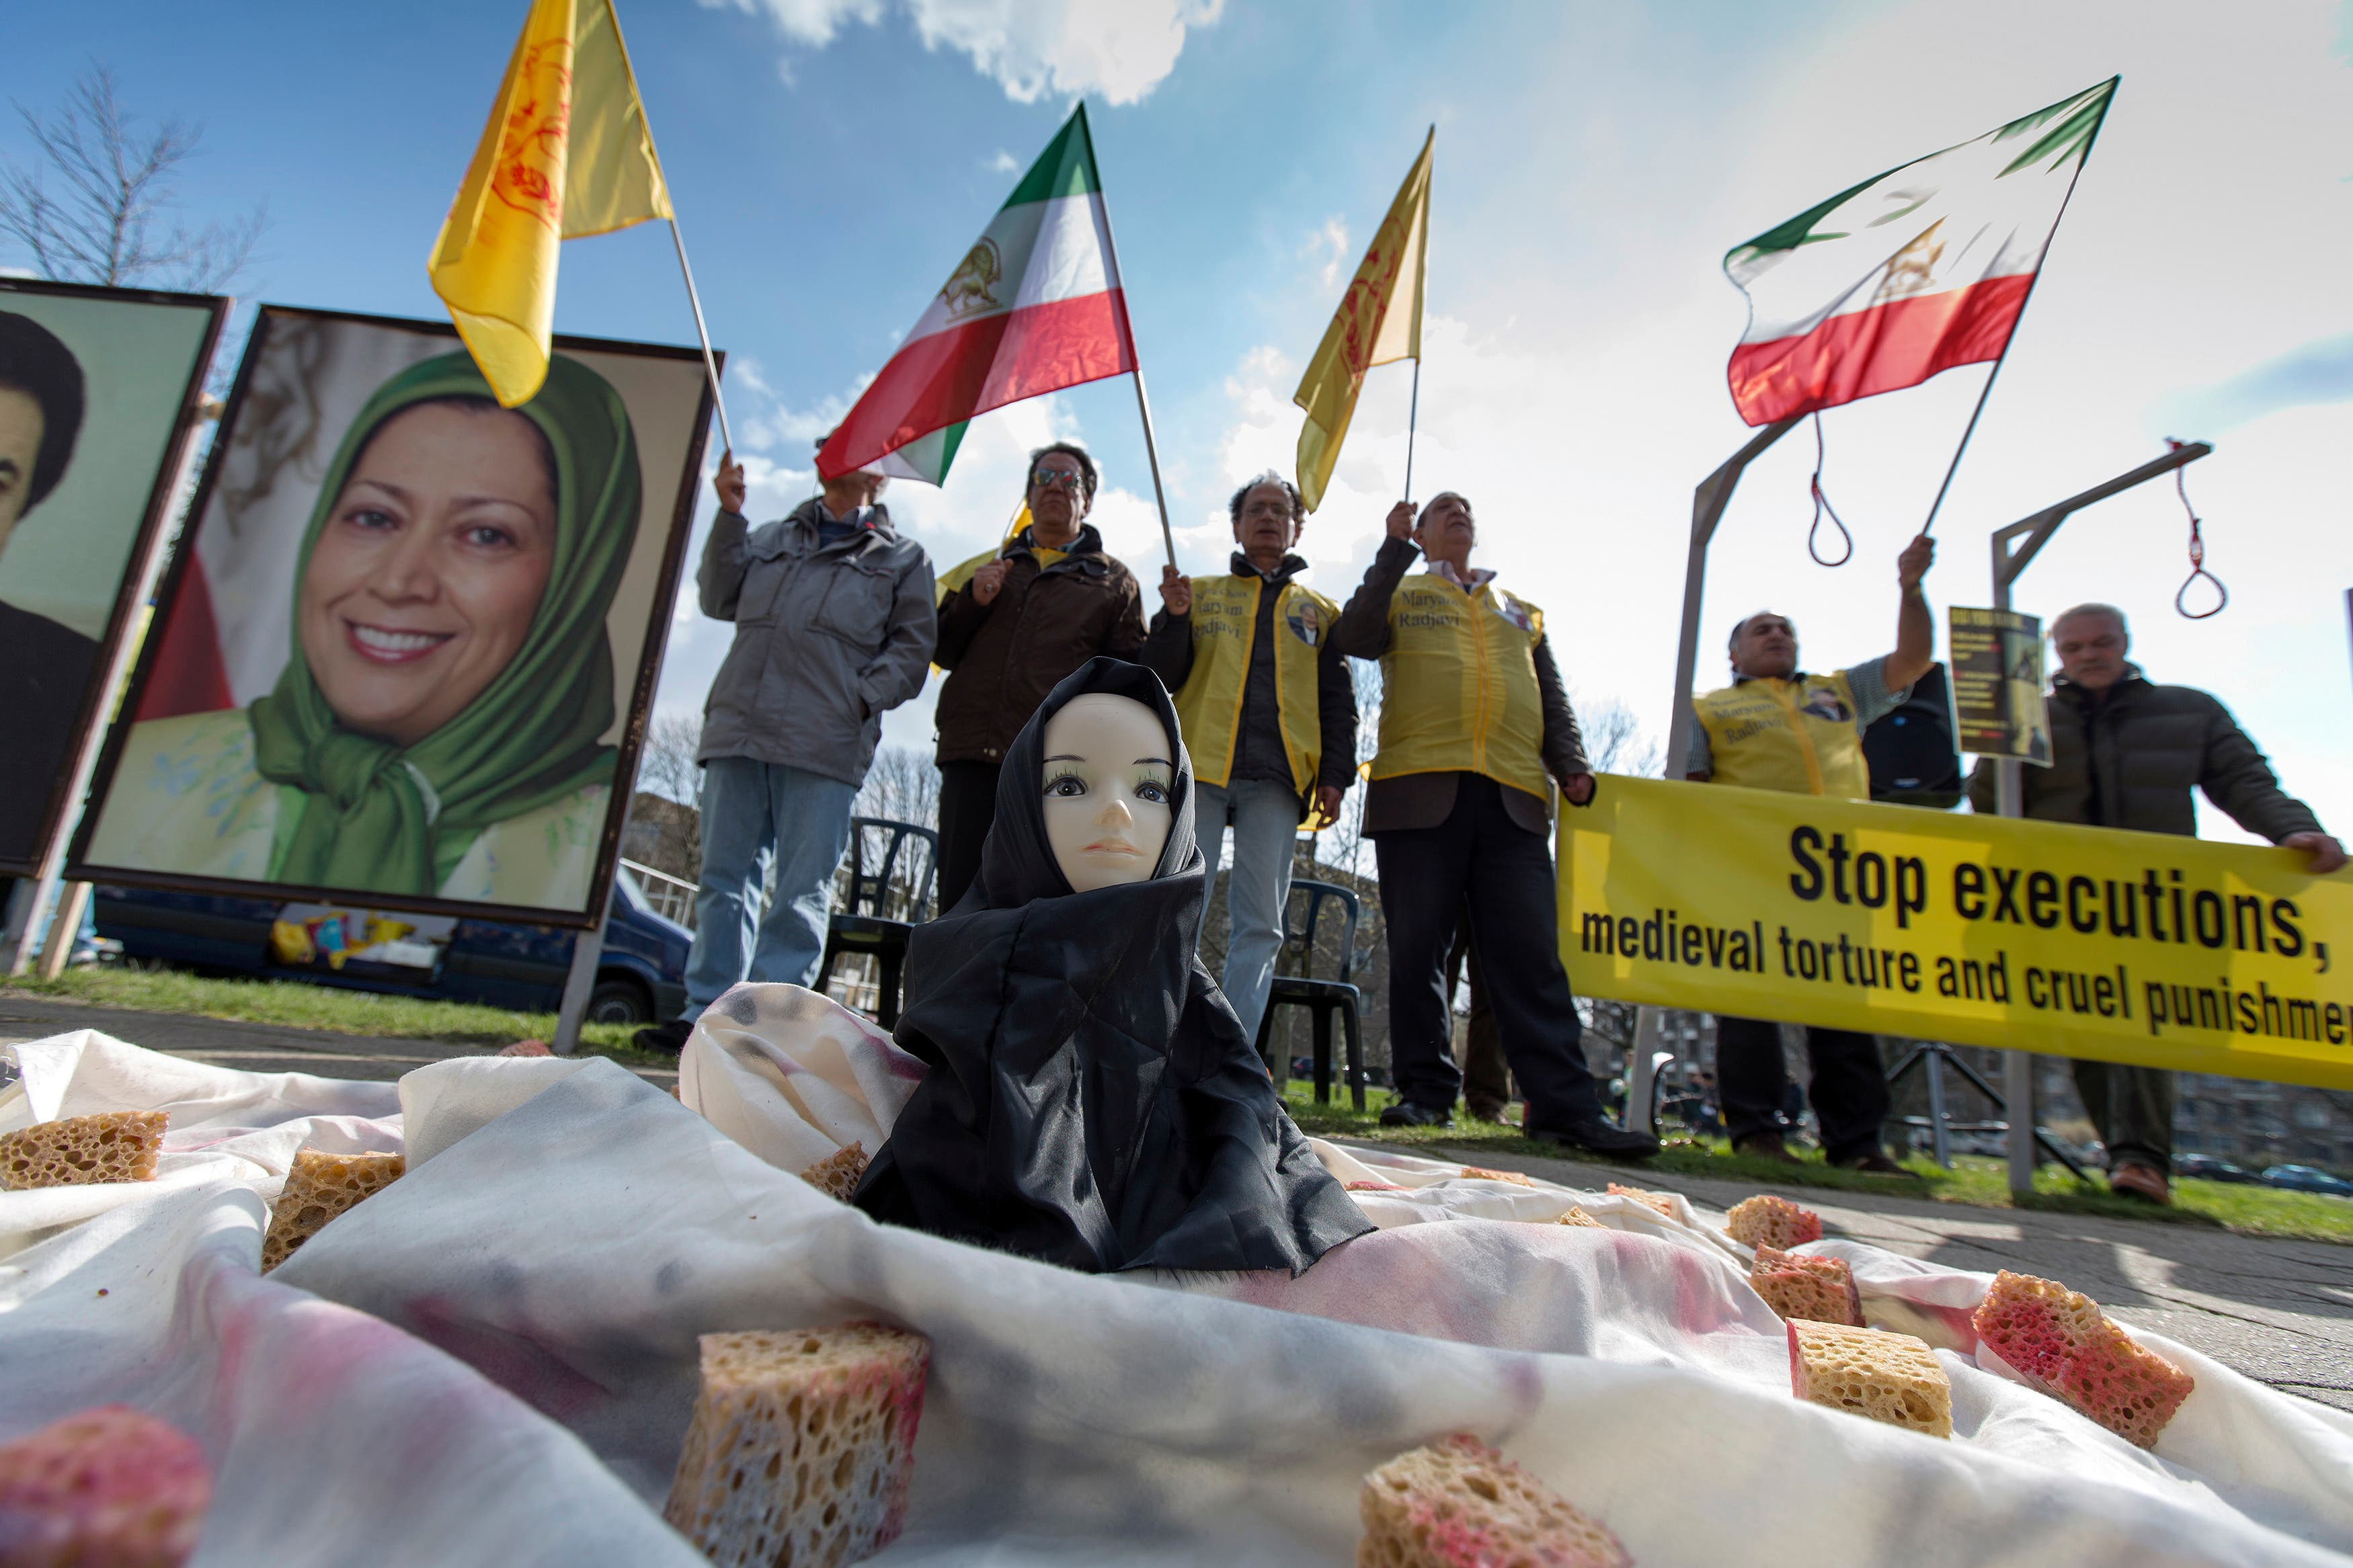 People protest against executions and human rights violations in Iran on a square near the Nuclear Security Summit in The Hague March 25, 2014. (Reuters)